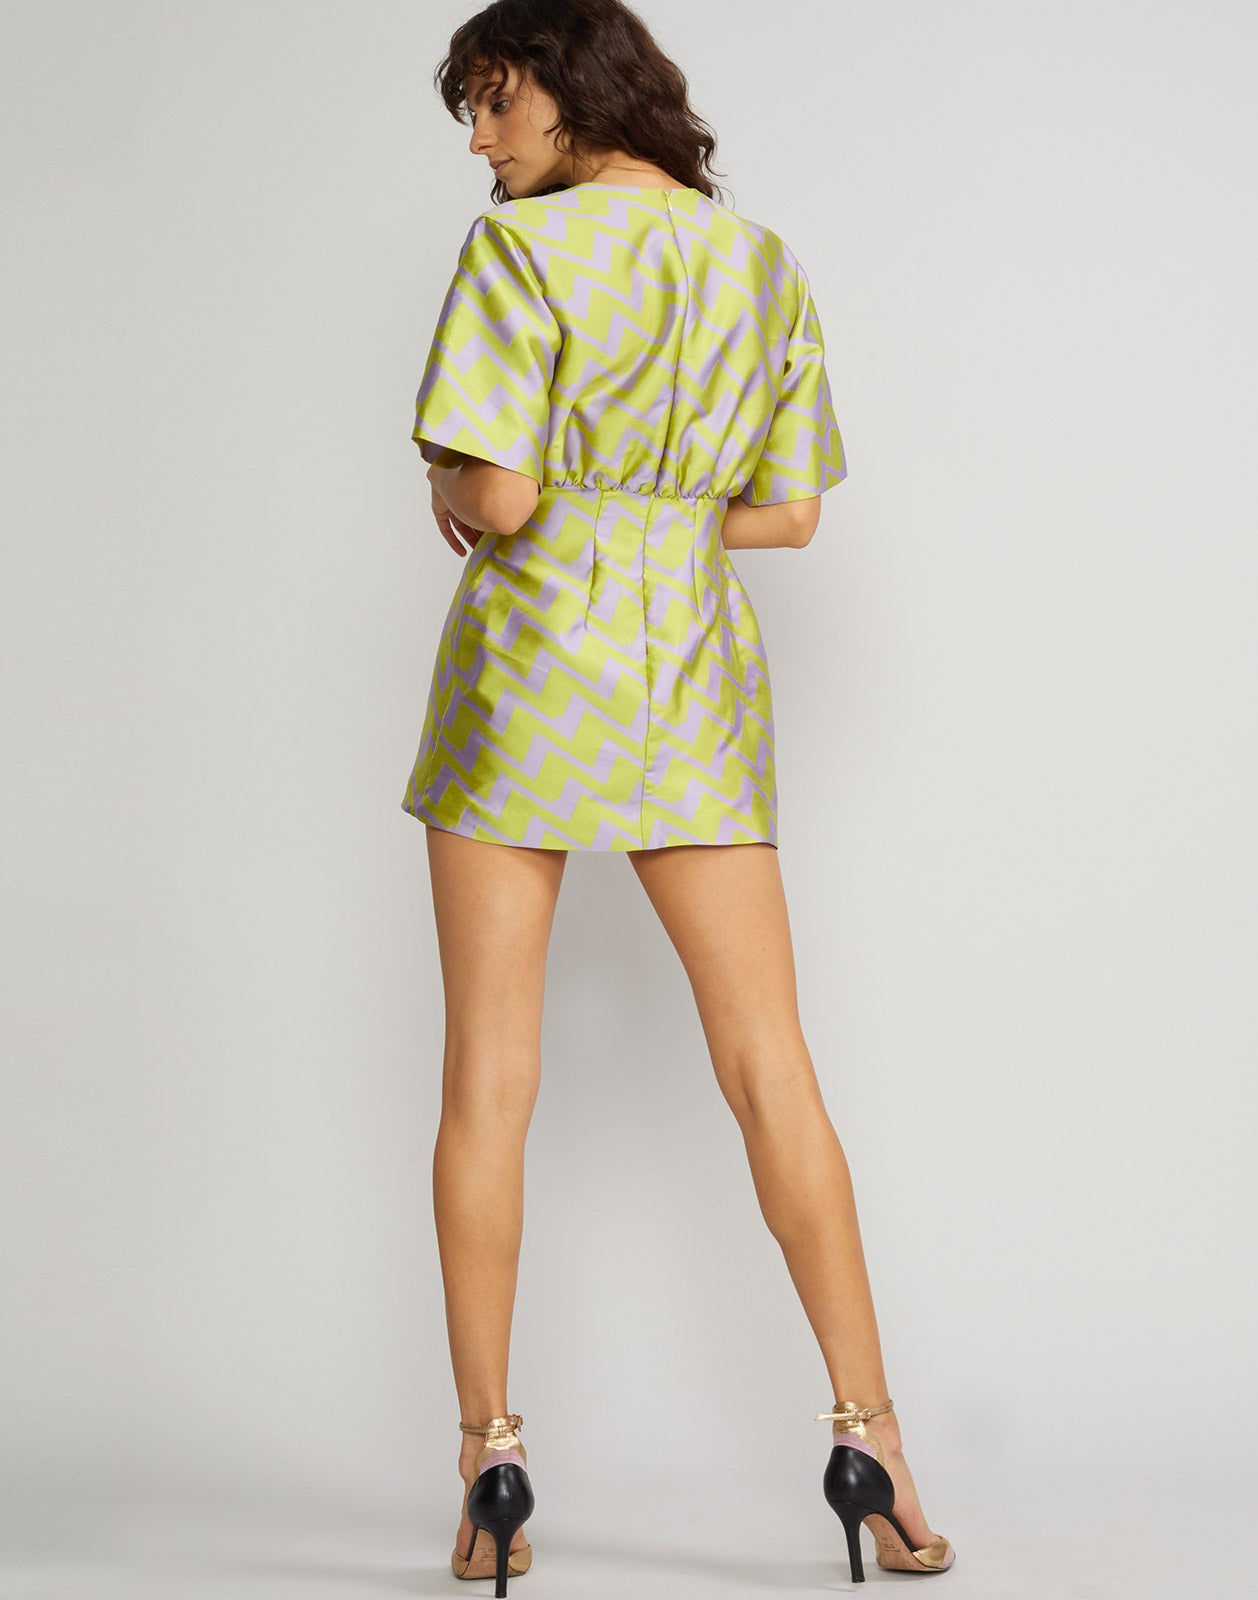 Back view of the Evanston Zig Zag Brocade Mini Dress in lavender and lime